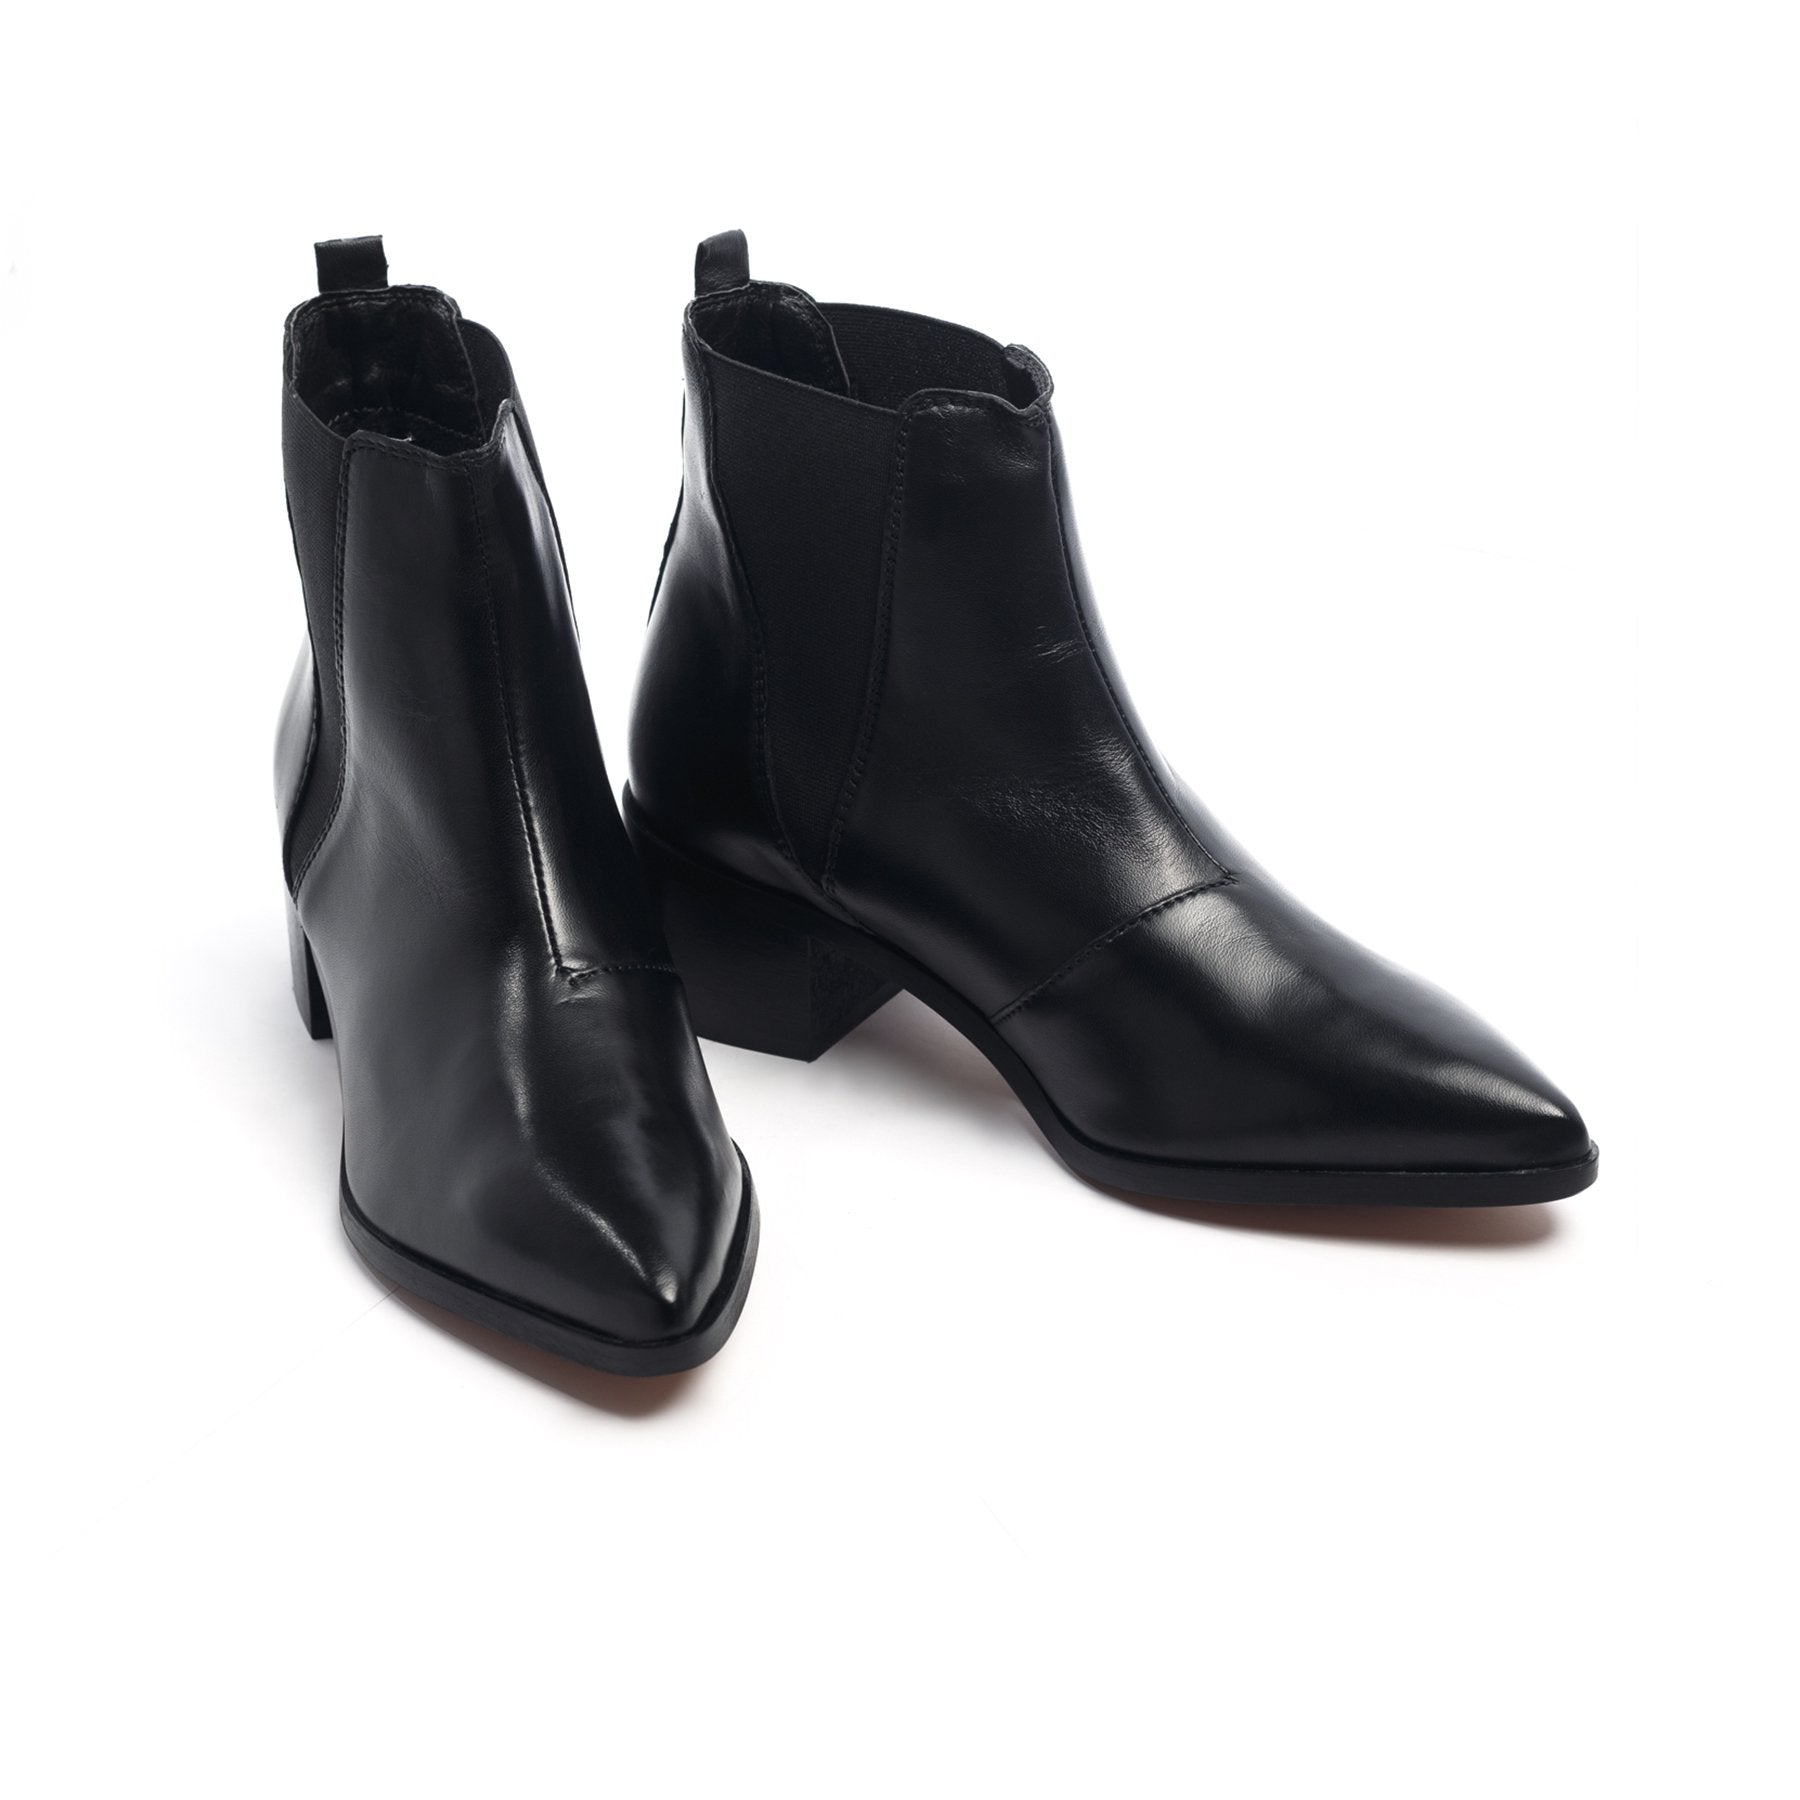 Perth Black Leather Boots